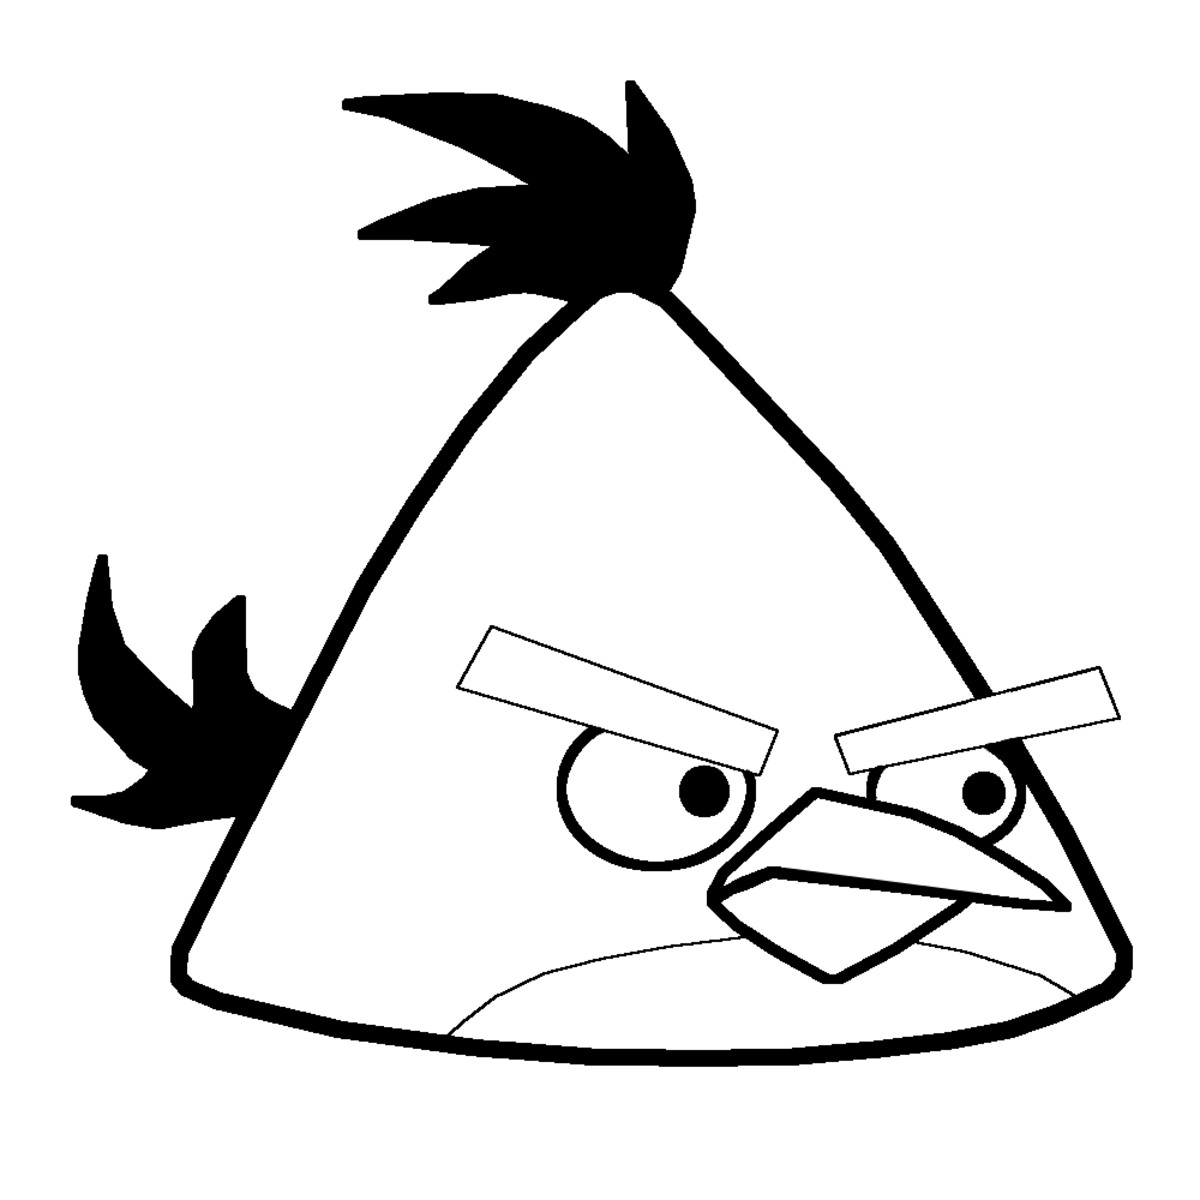 angry birds outline pictures angry birds coloring pages z31 outline birds angry pictures